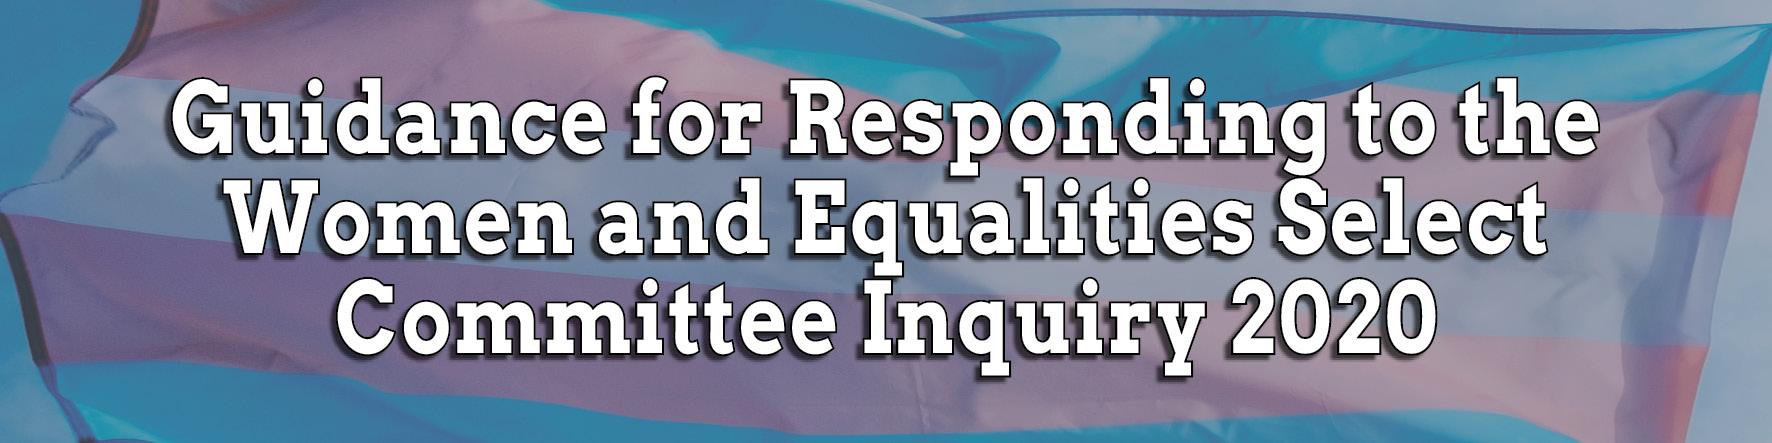 Guidance for Responding to the Women and Equalities Select Committee Inquiry 2020